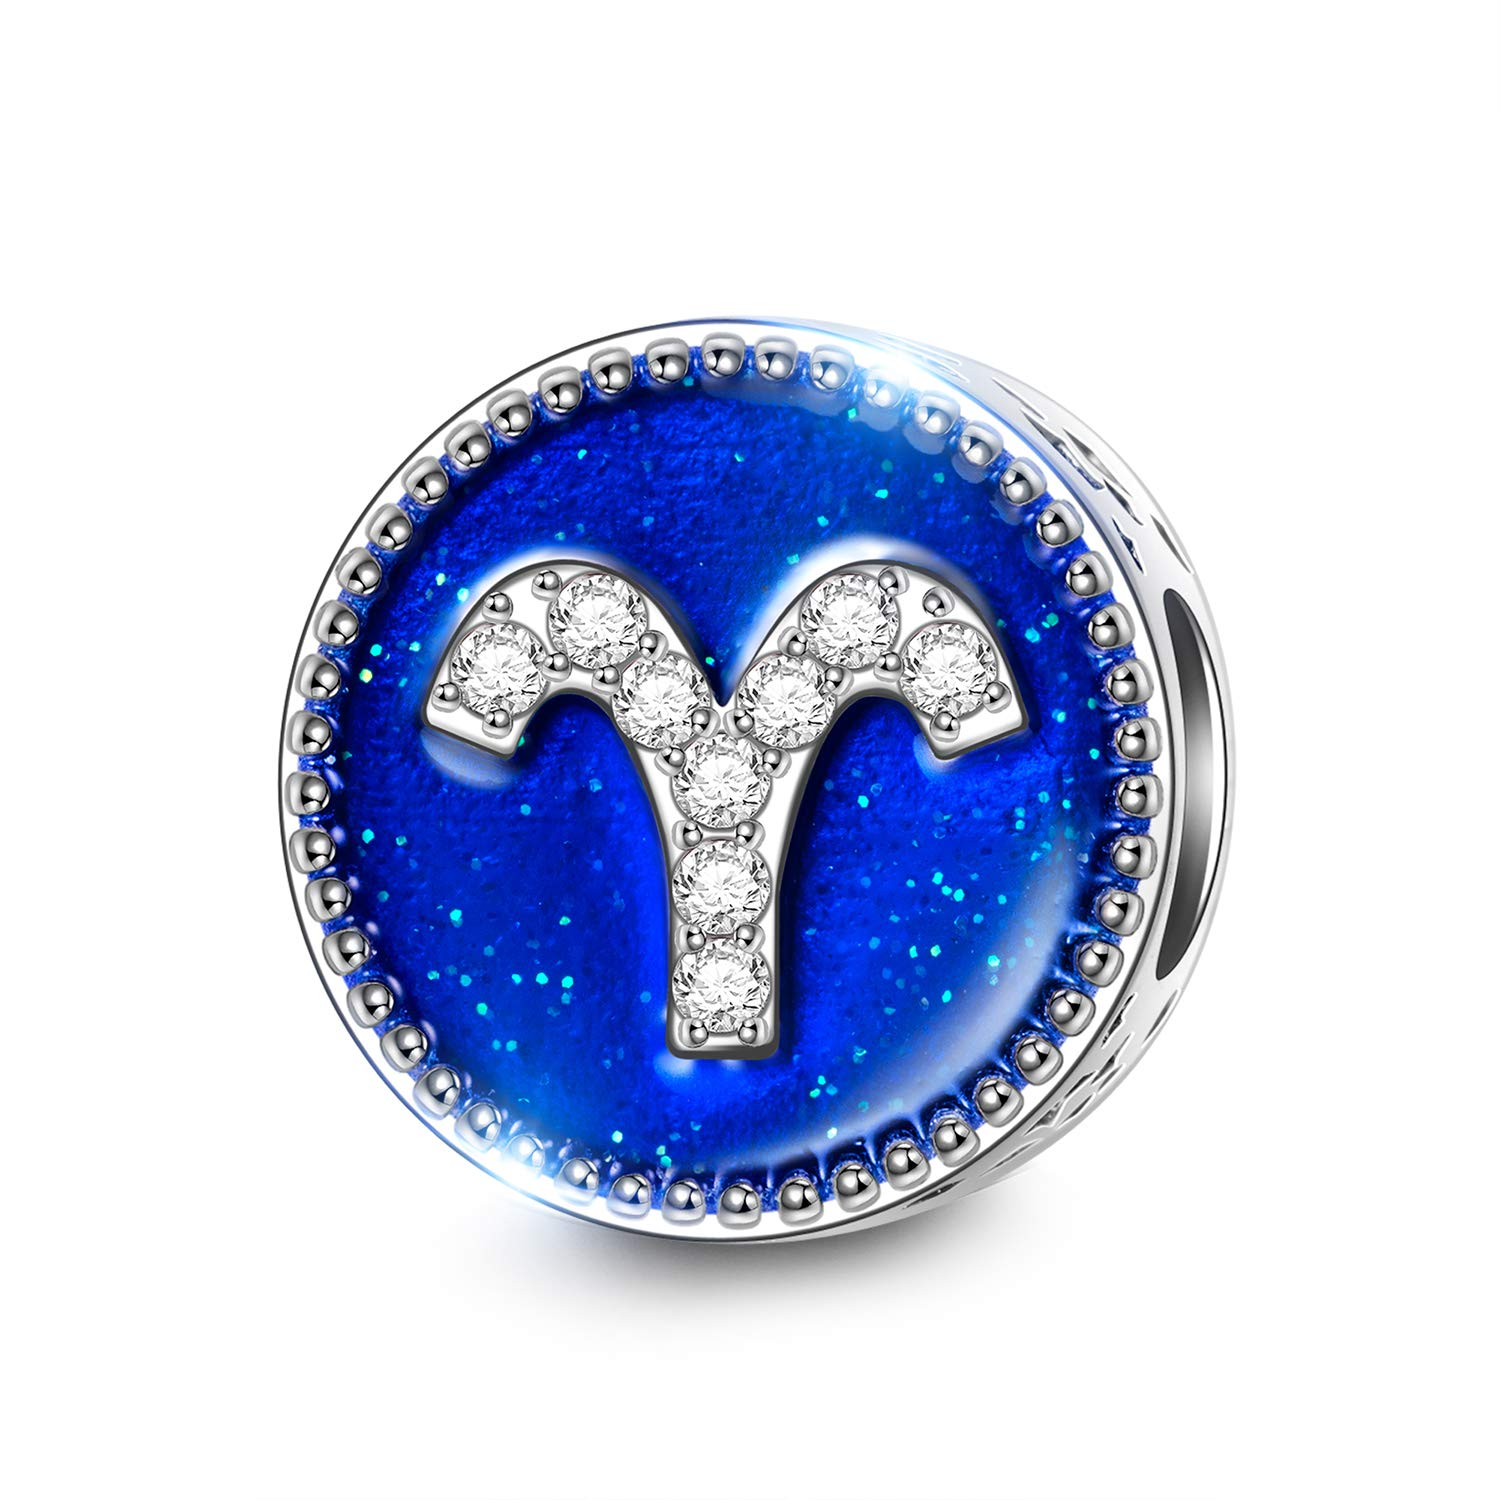 NINAQUEEN 11MM Blue Enamel Zodiac Sign Bracelet Charm 925 Sterling Silver Constellation Beads Charms for Pandöra Bracelets European Necklace Valentines Birthday Gifts for Wife Mom Girlfriend